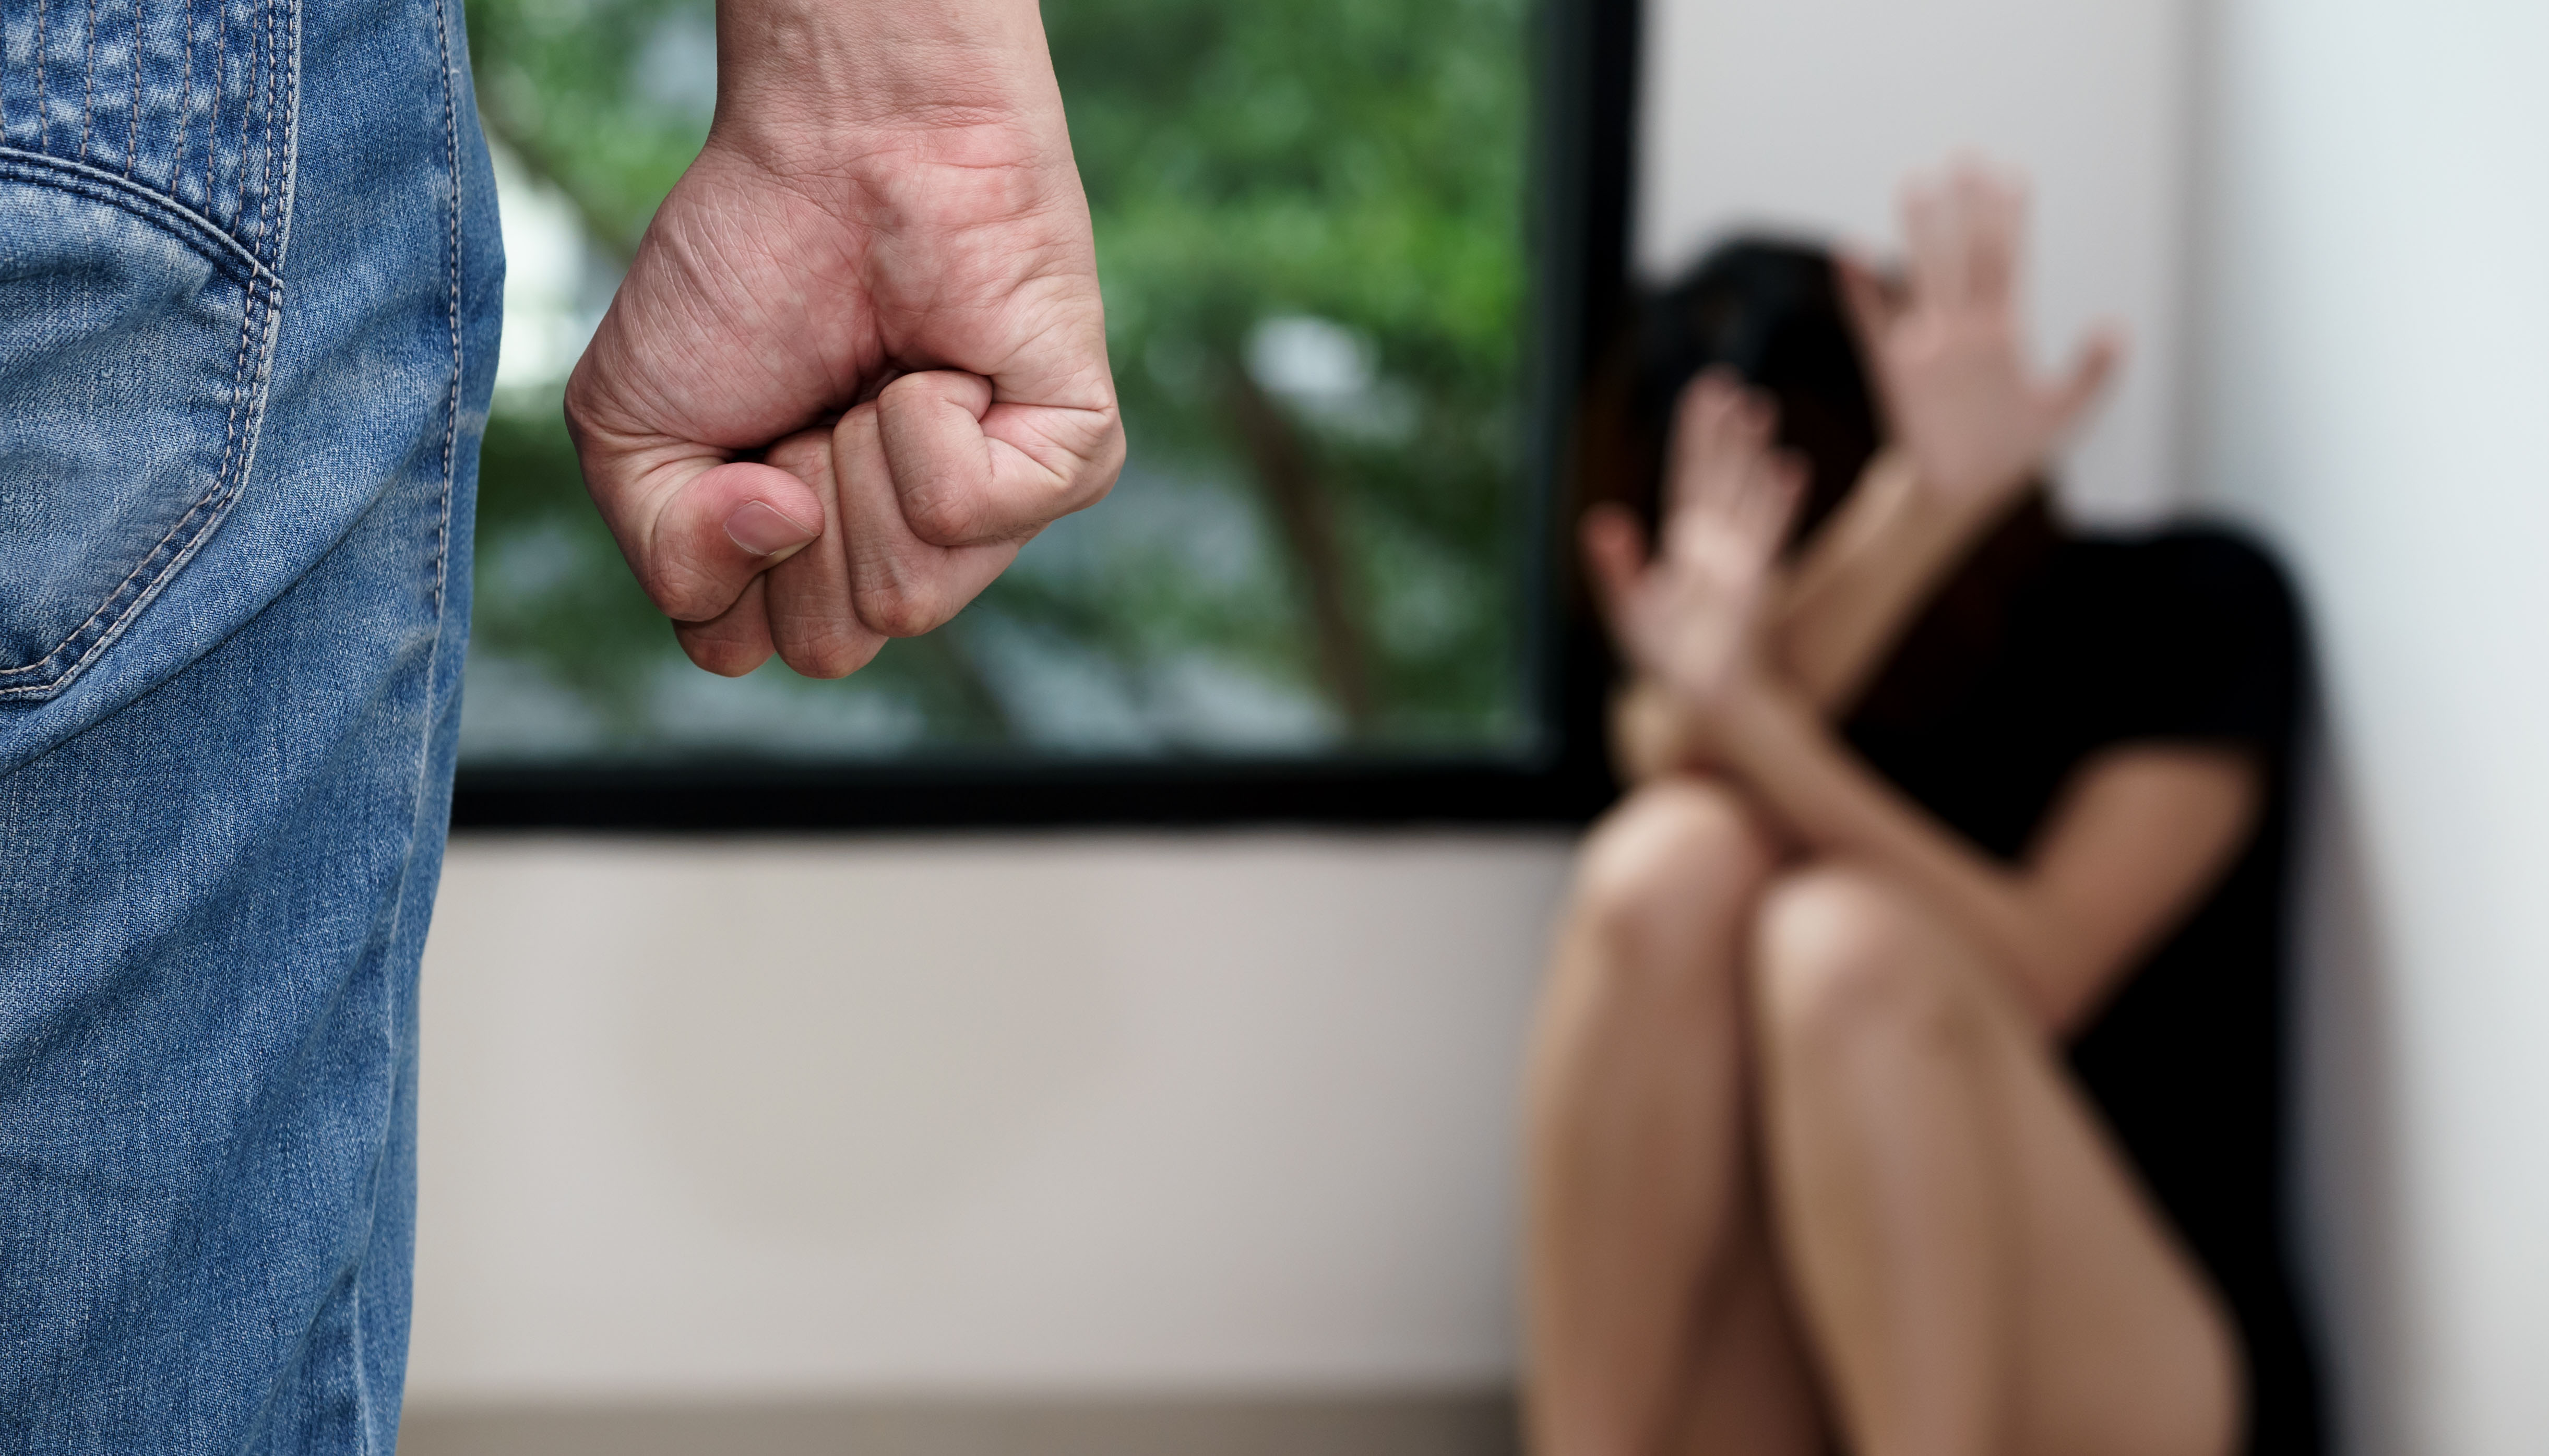 0bce8bc1b81f162fdbc06af6629d991f - The law on domestic violence — how it should work in the US